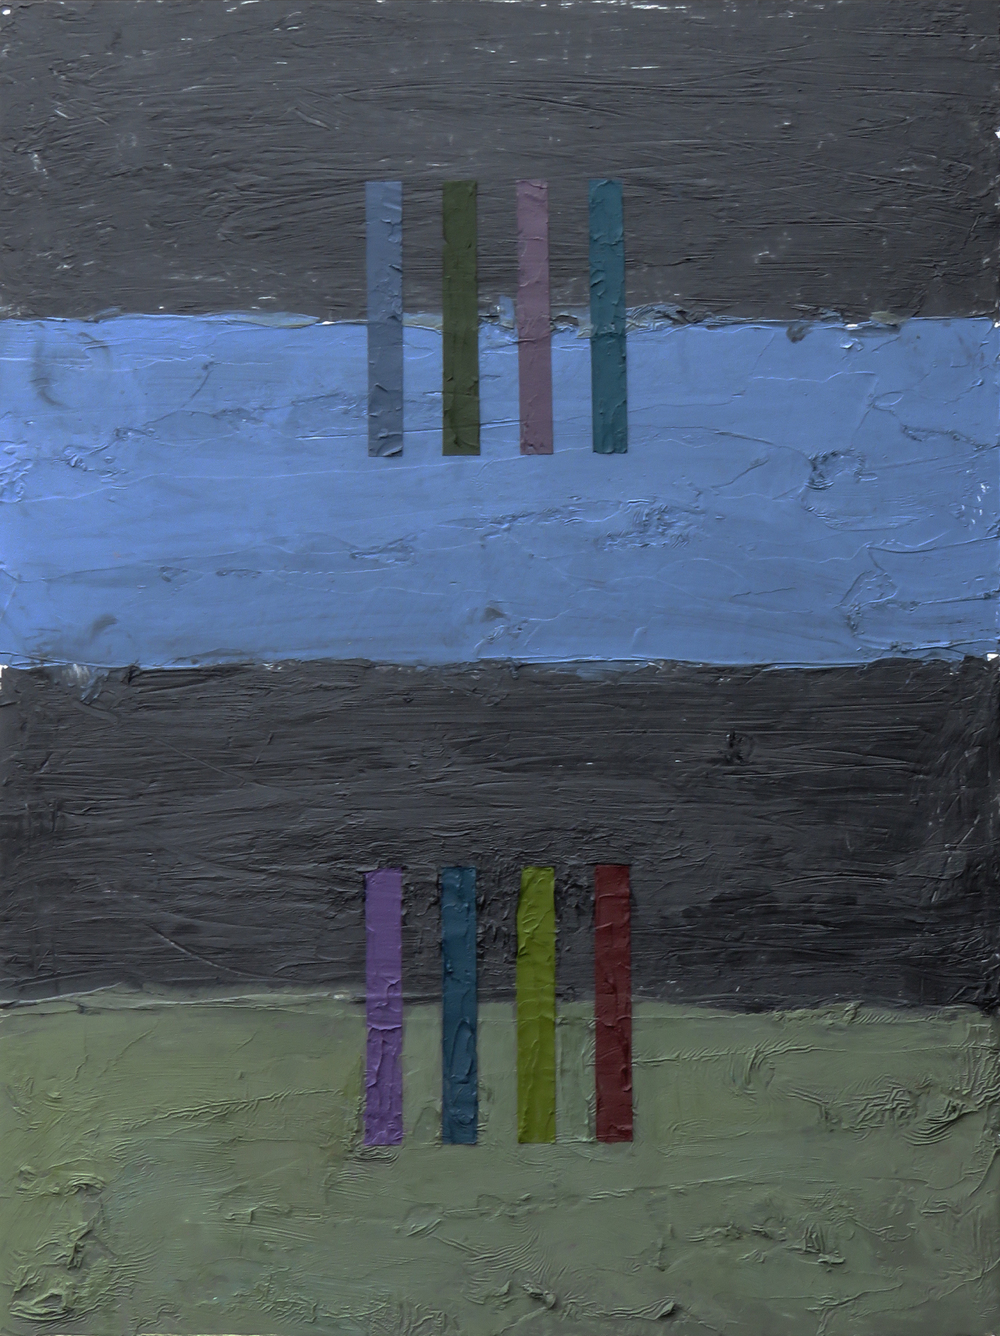 Interference II, 2016 Oil, Alkyd Enamel, Wax on wood, 16 x 12 inches SOLD